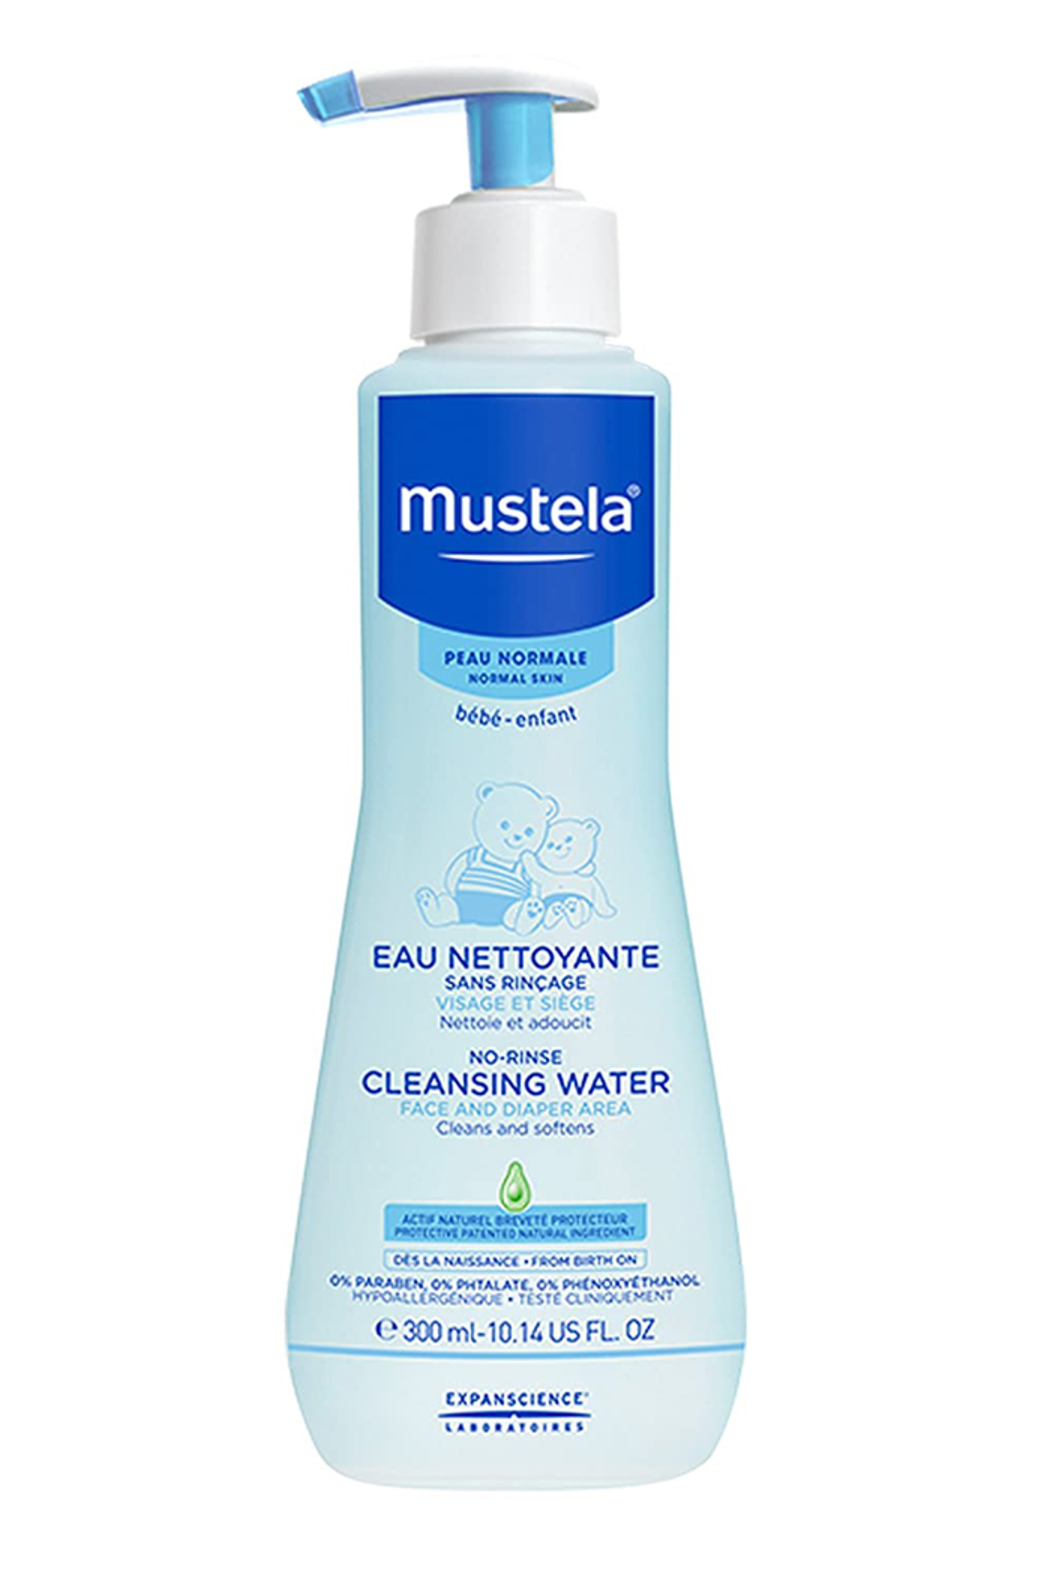 Mustela No Rinse Cleansing Water, Micellar Water Cleanser For Baby's Face, Body & Diaper - Main Image